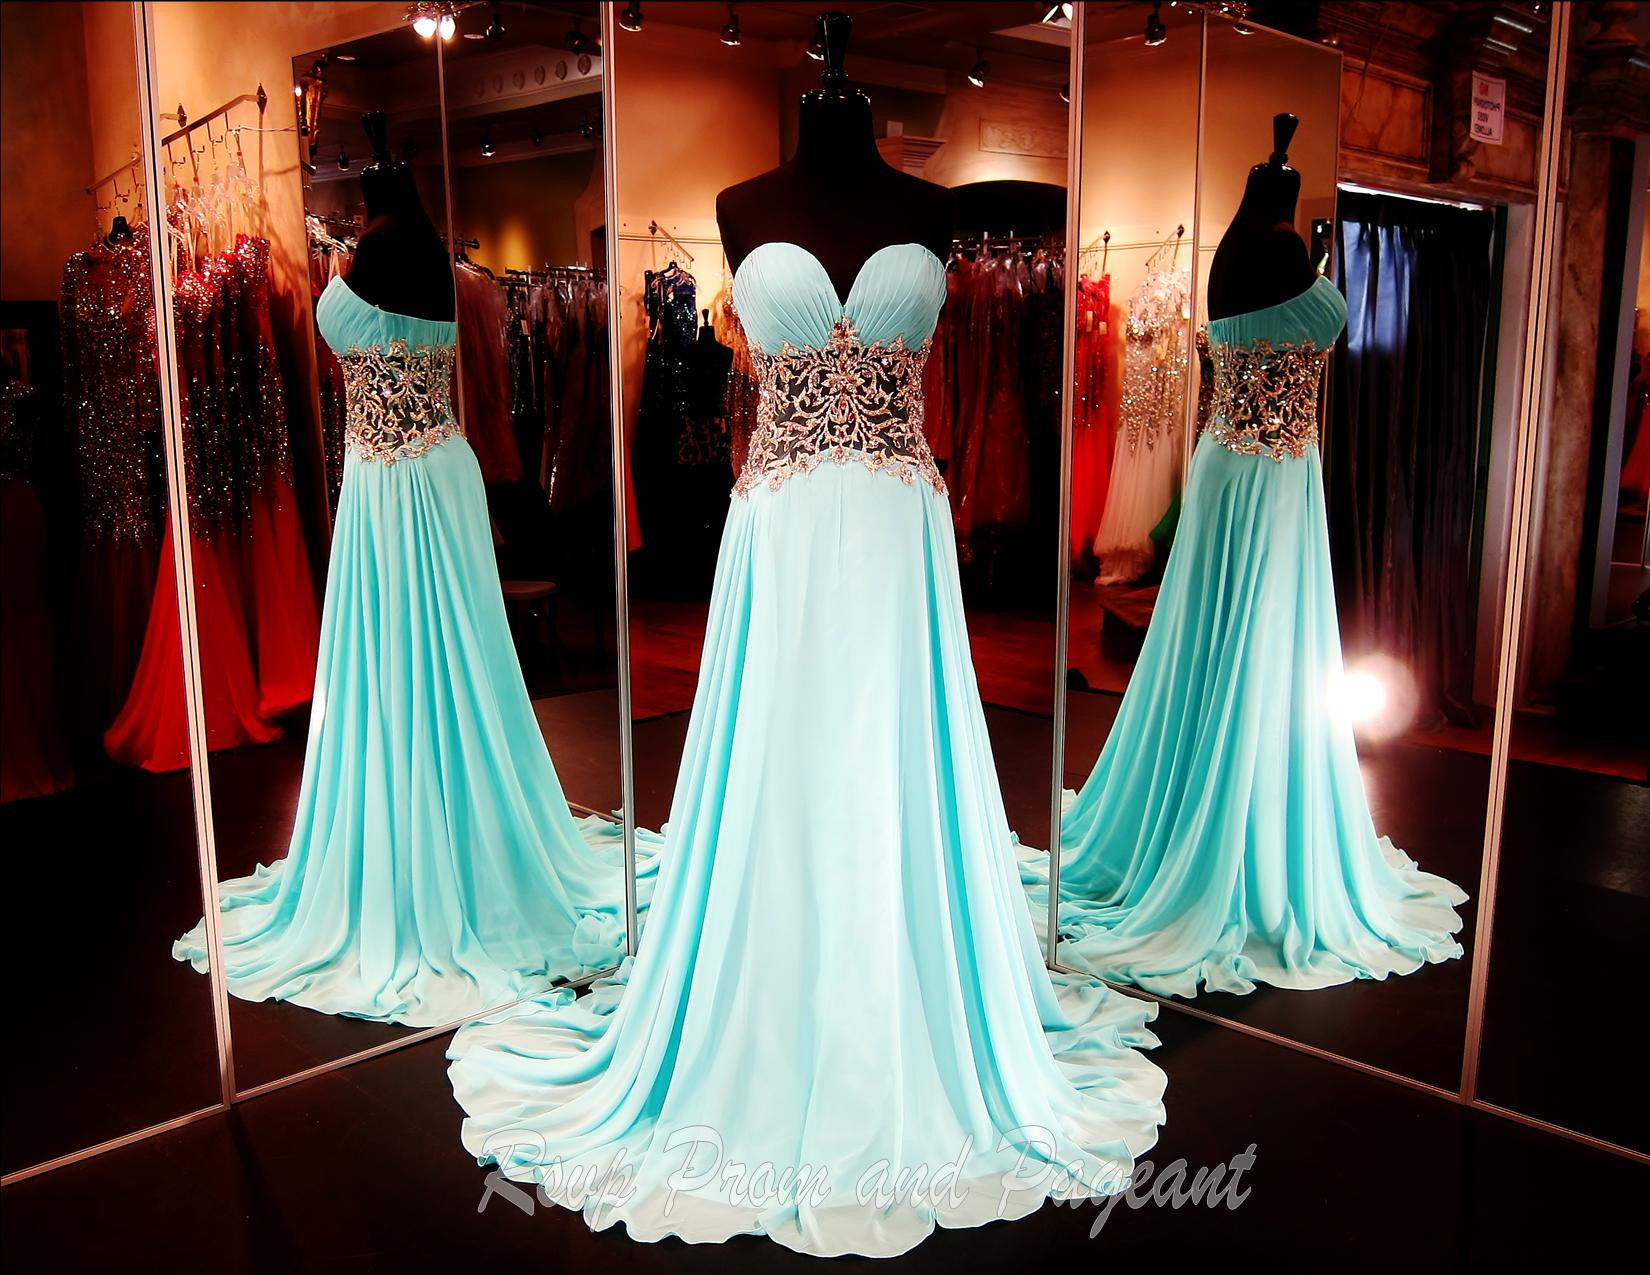 2014 NC090200358 PROM PAGEANT DRESS at RSVP PROM AND PAGEANT | Rsvp Prom and Pageant